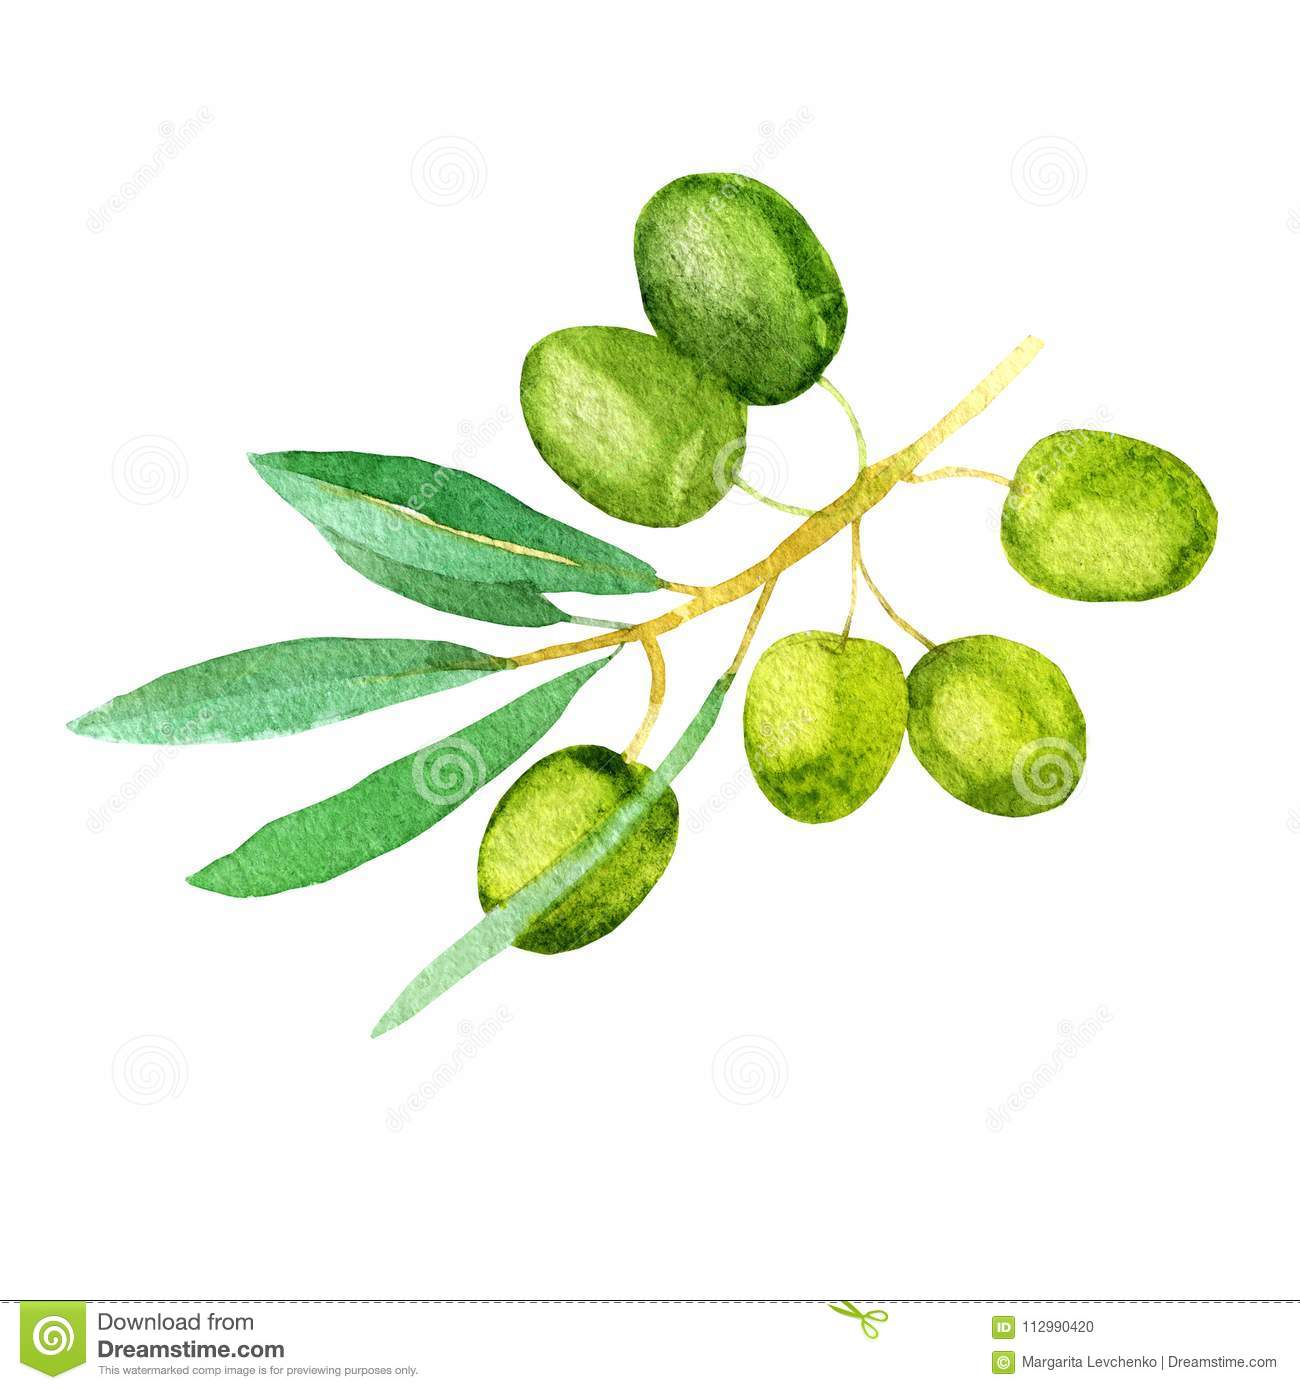 Watercolor illustration. Image of olives.